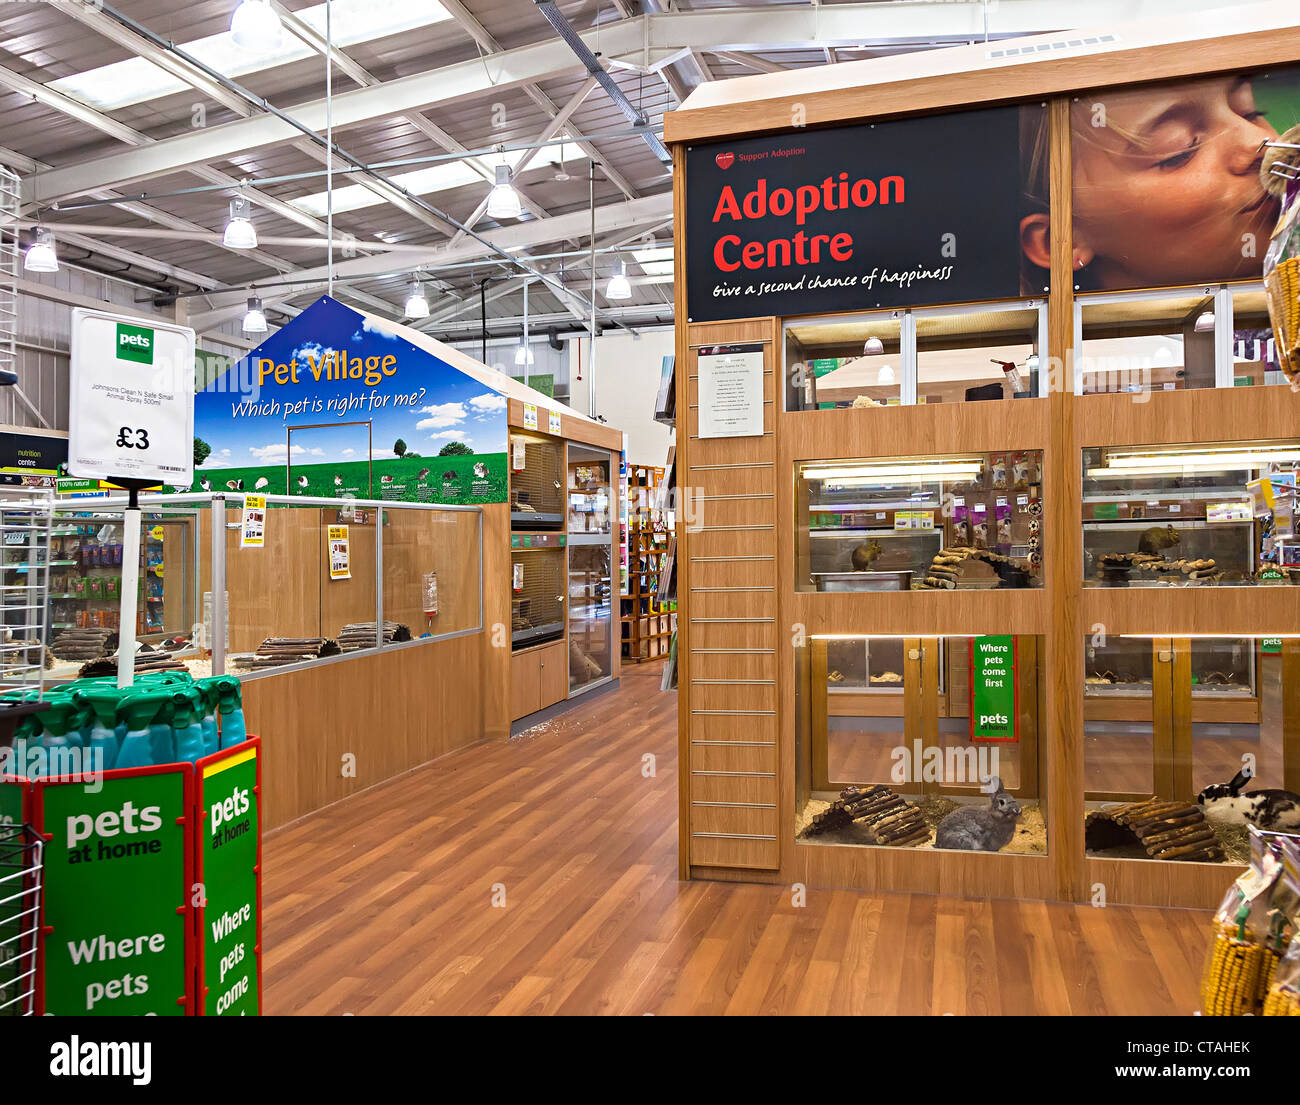 Pet supplies store with adoption centre for rehoming animals, UK - Stock Image